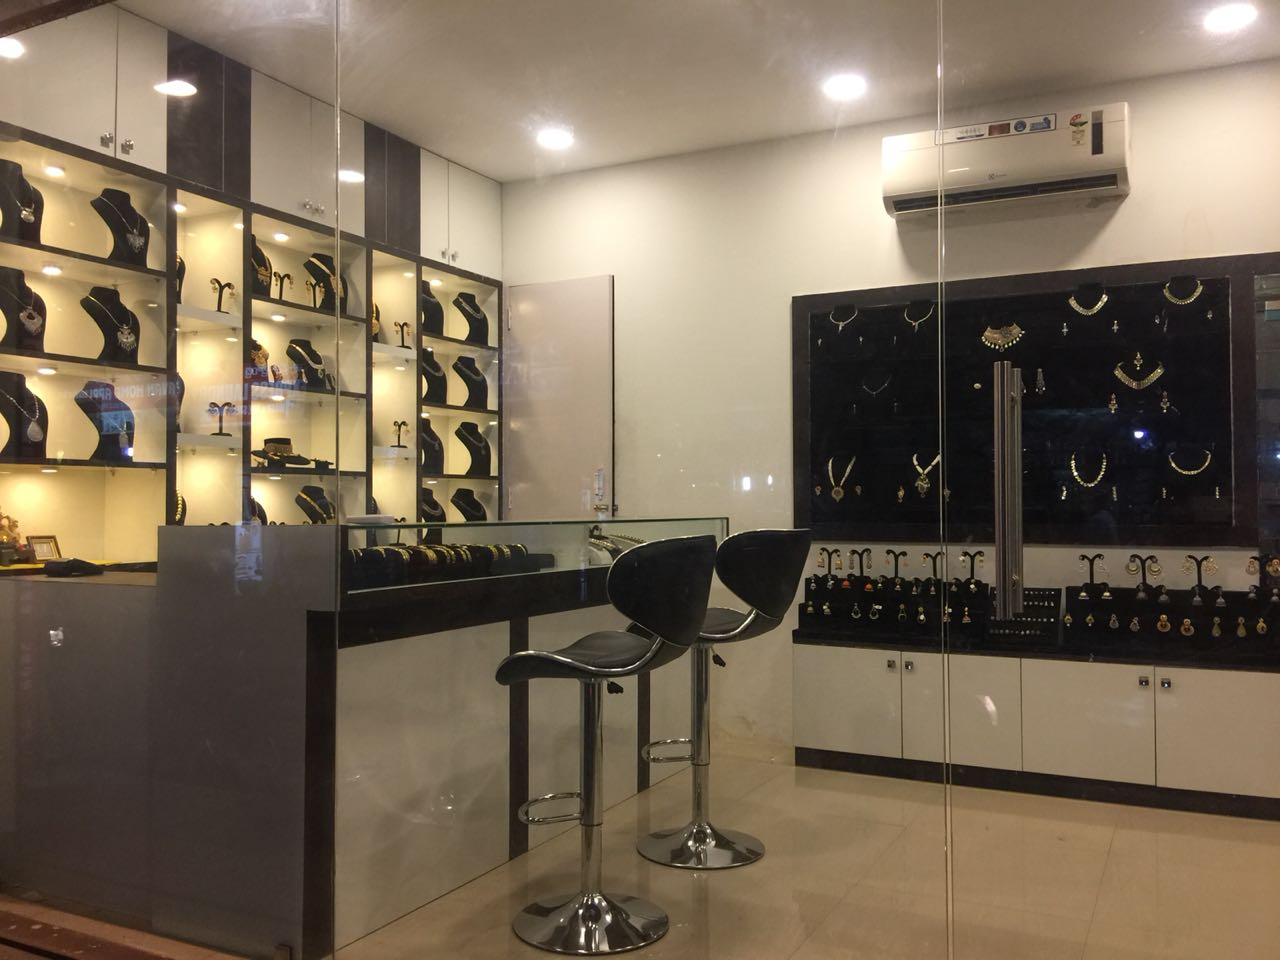 Profitable Imitation Jewellery Retail Business for Sale in Bangalore